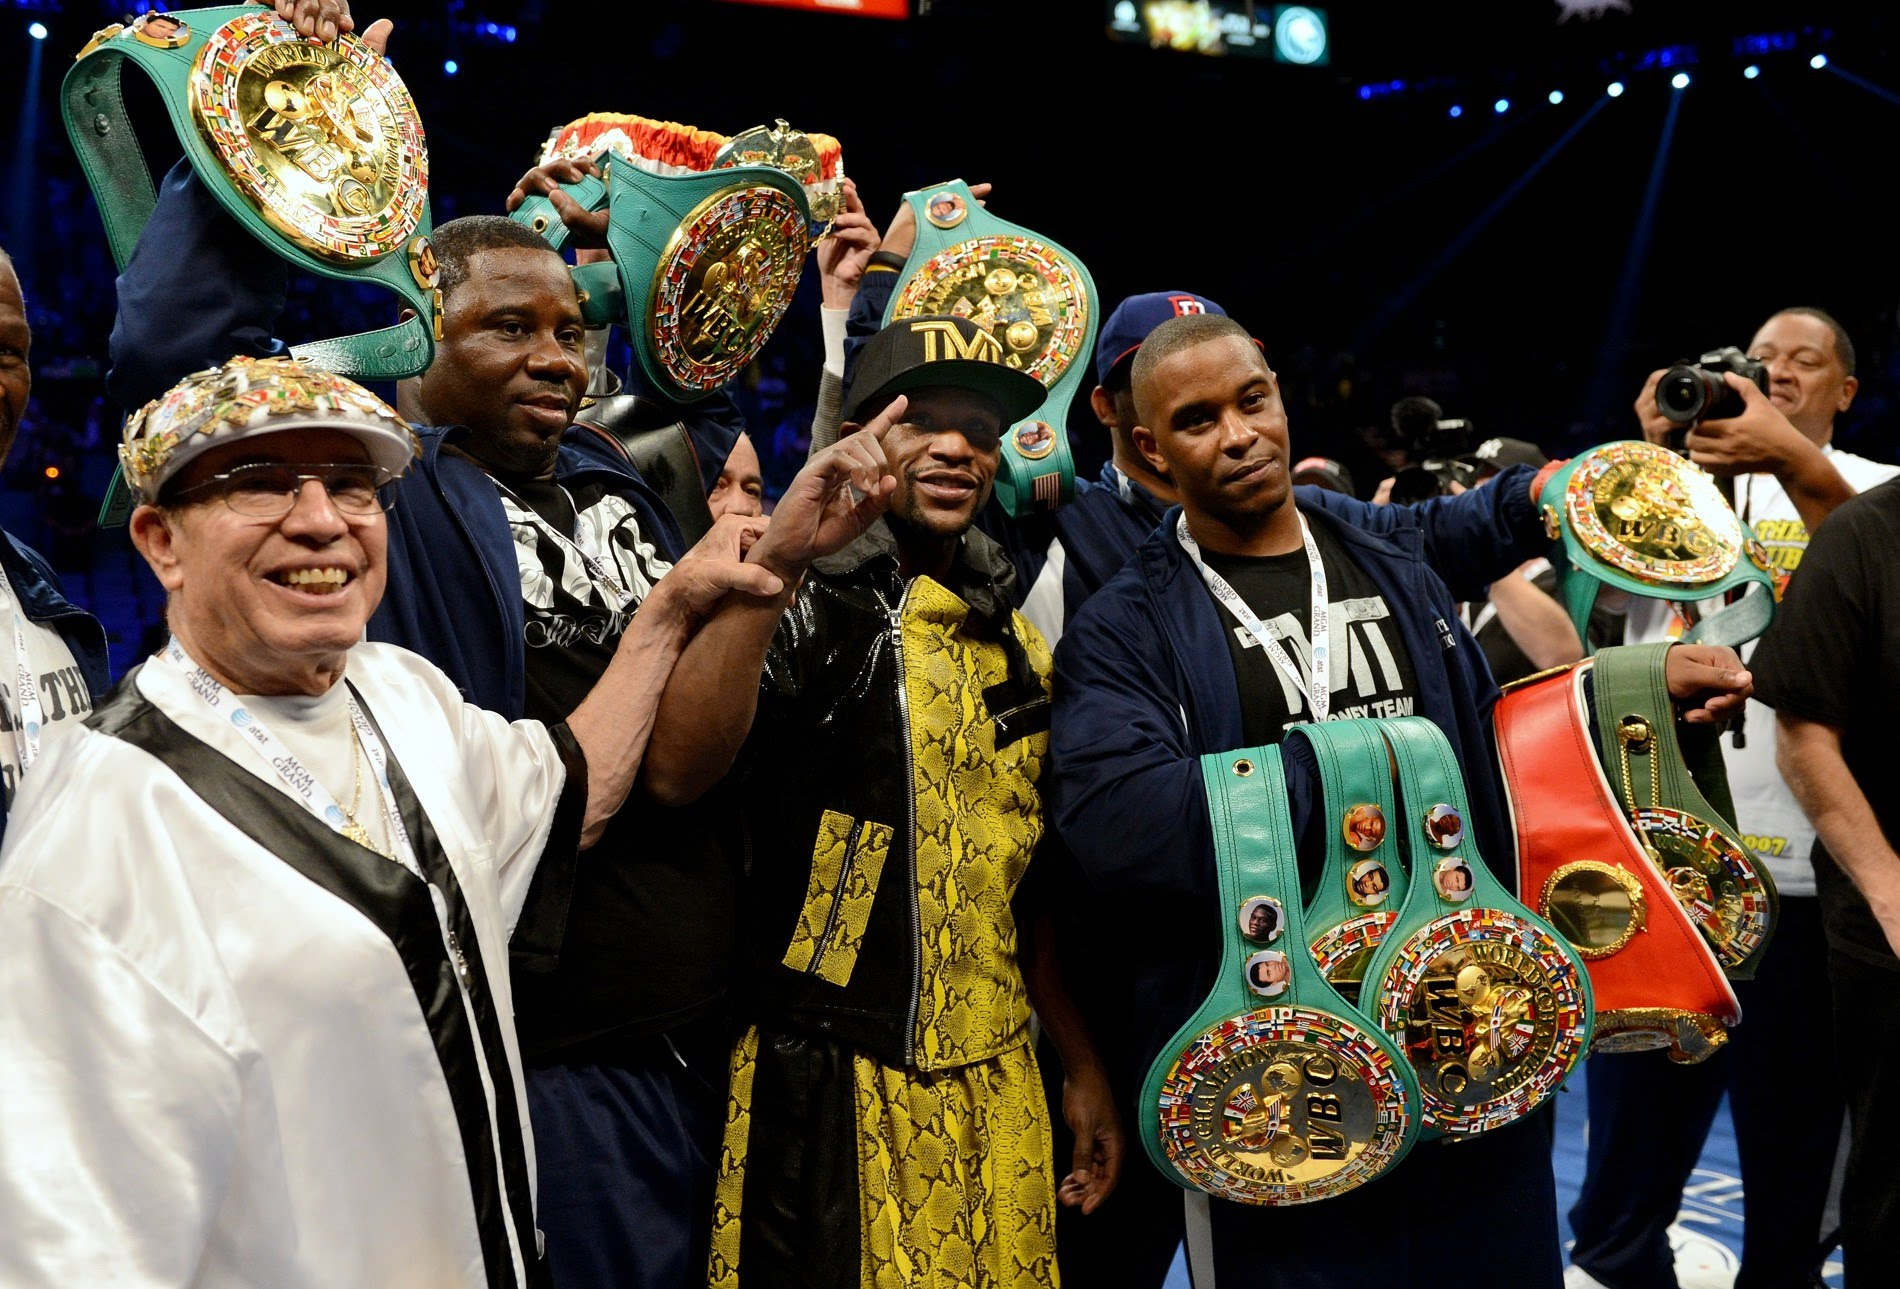 A Single Governing Body for Boxing